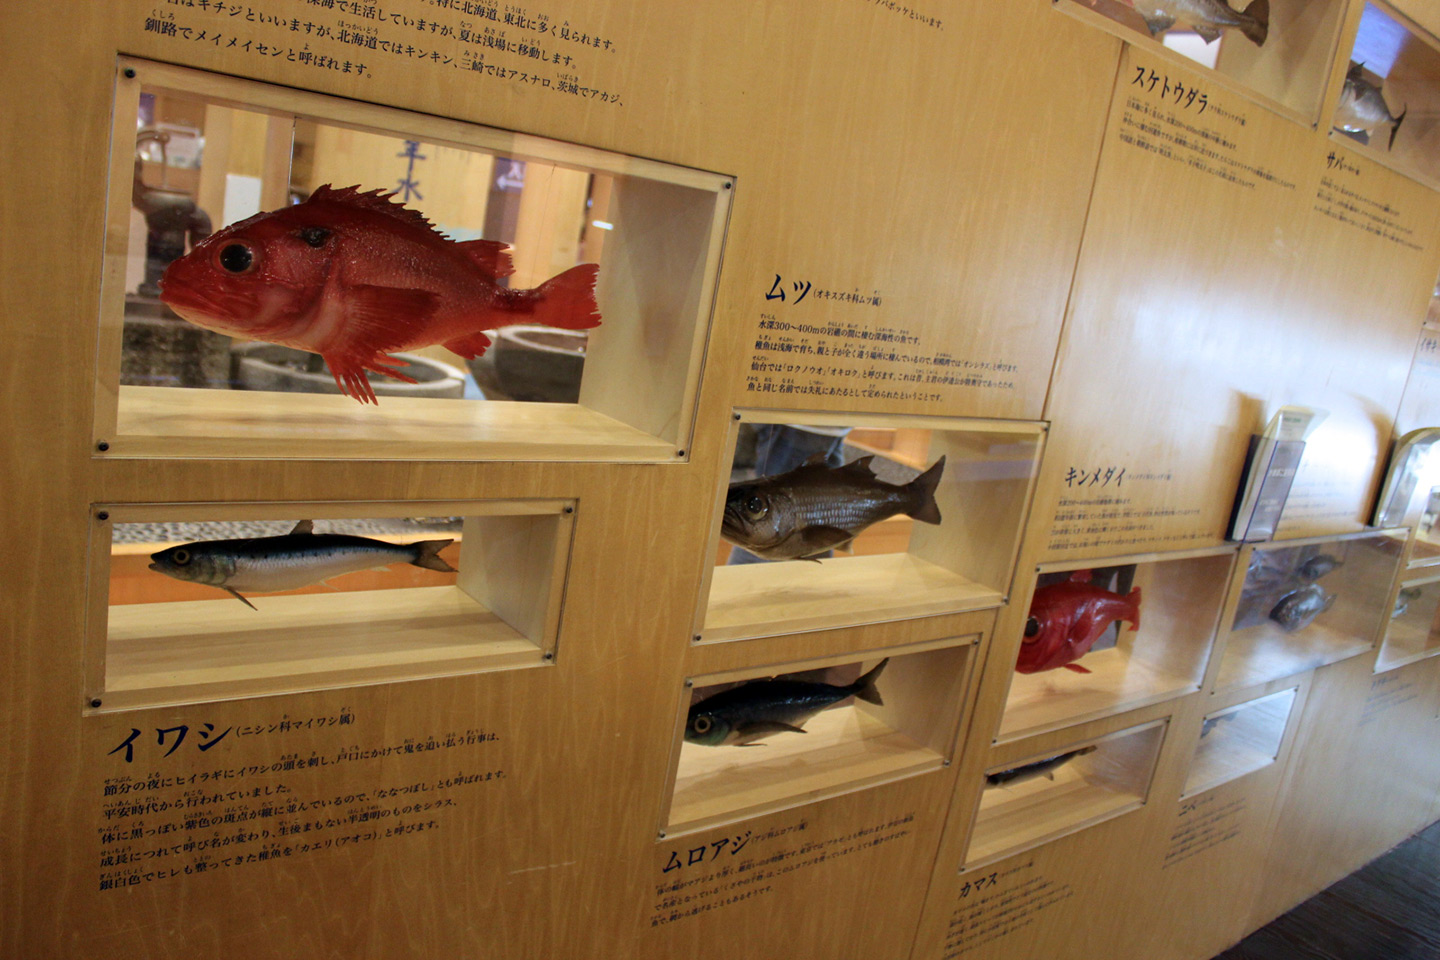 display of various fish used for kamaboko